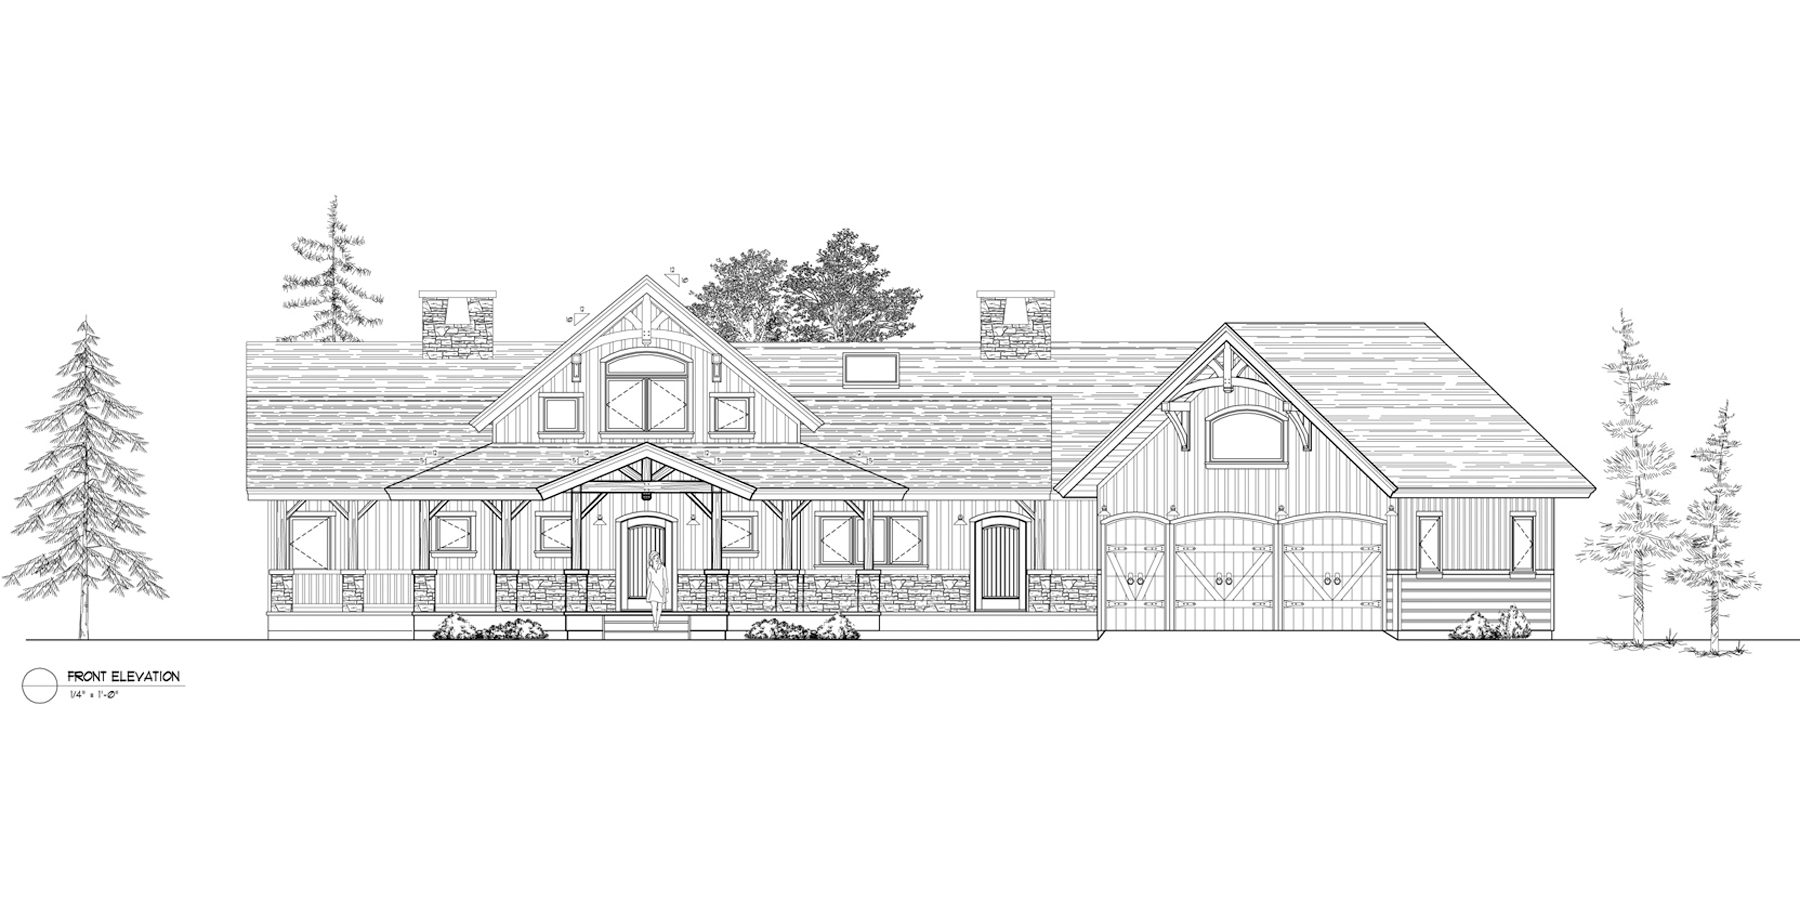 Normerica Timber Frames, House Plan, Algoma 3538, Front Elevation